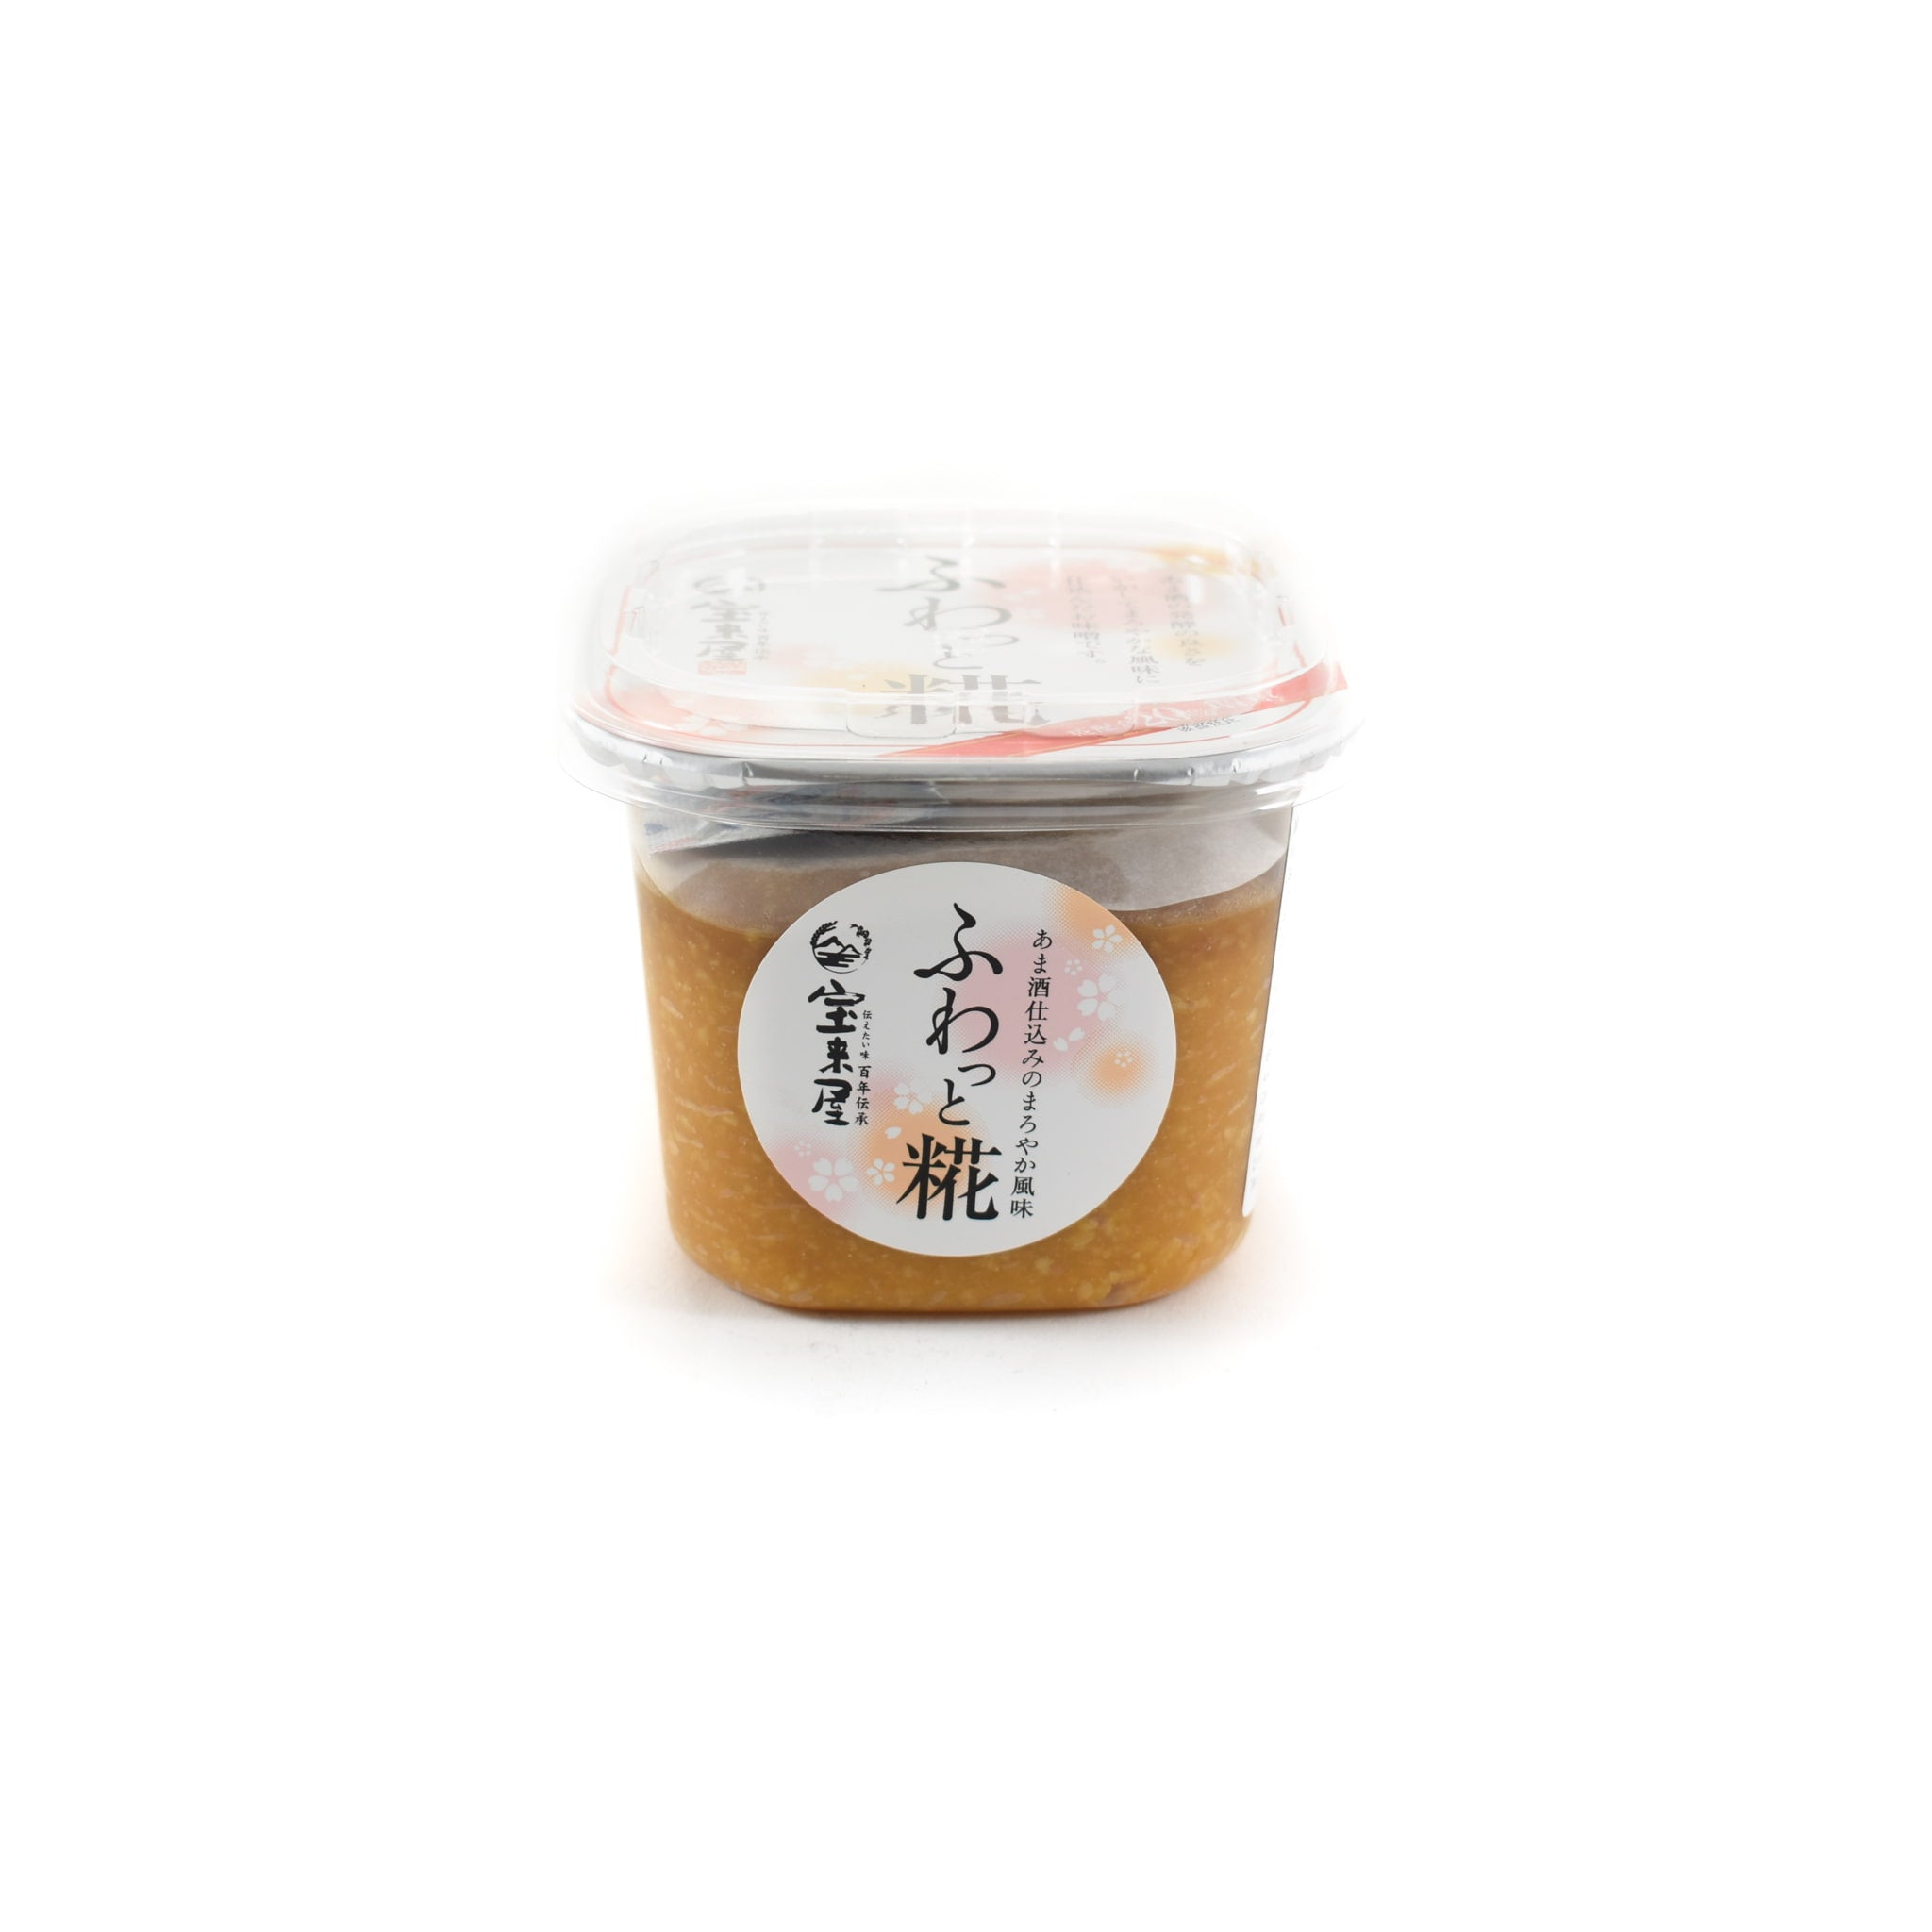 Creamy Miso With Koji 500g